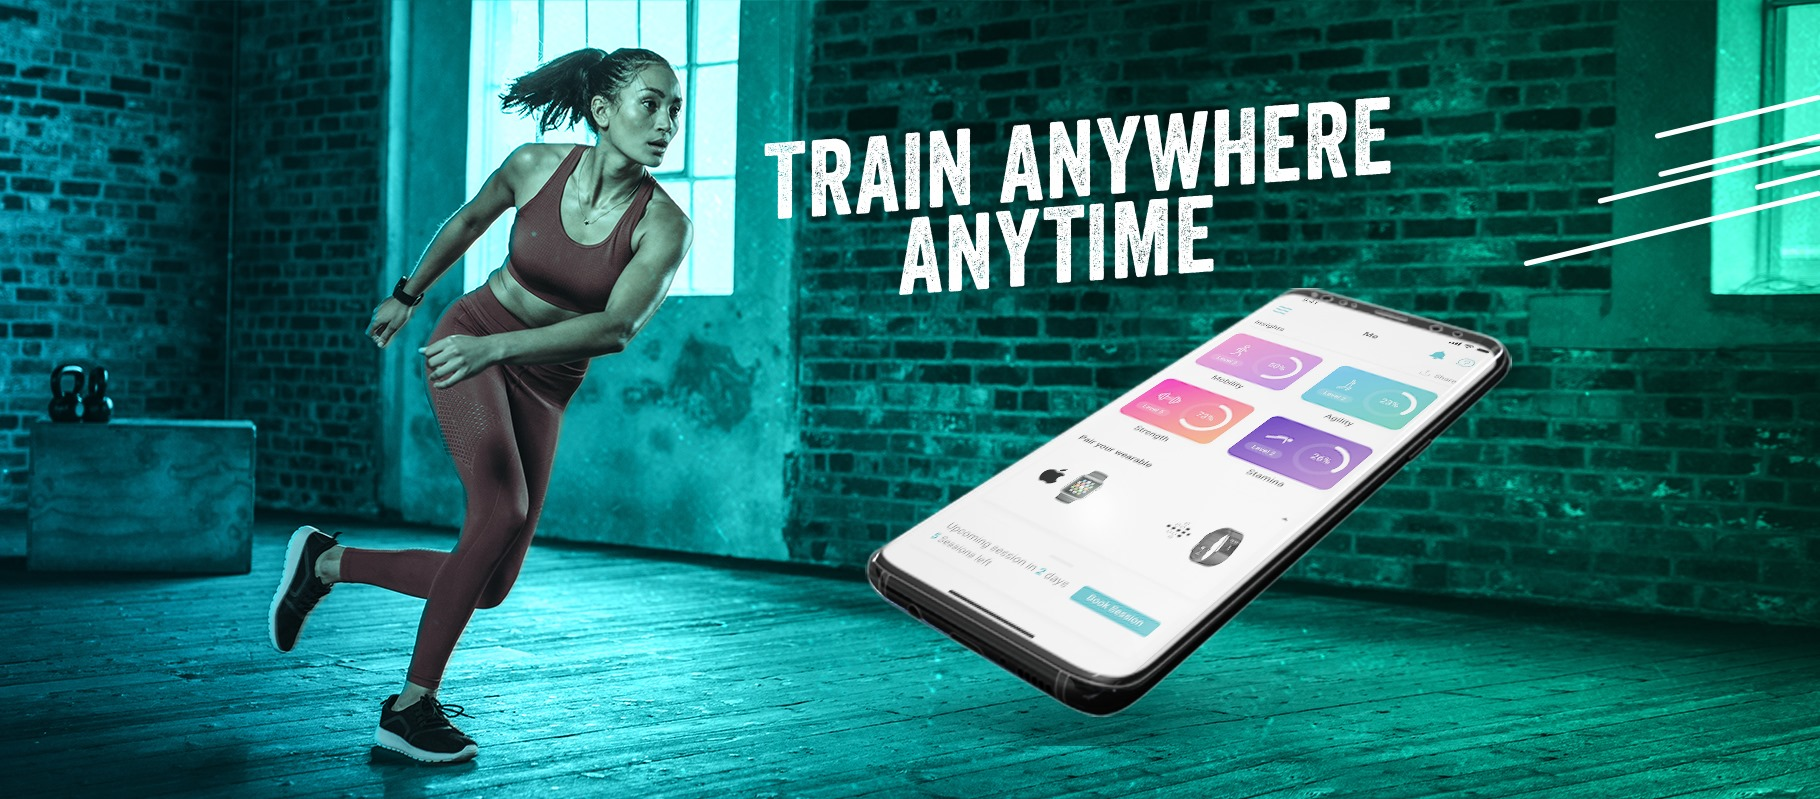 Enhance Fitness, on-demand personal trainer platform, raises $3 million in Series A funding